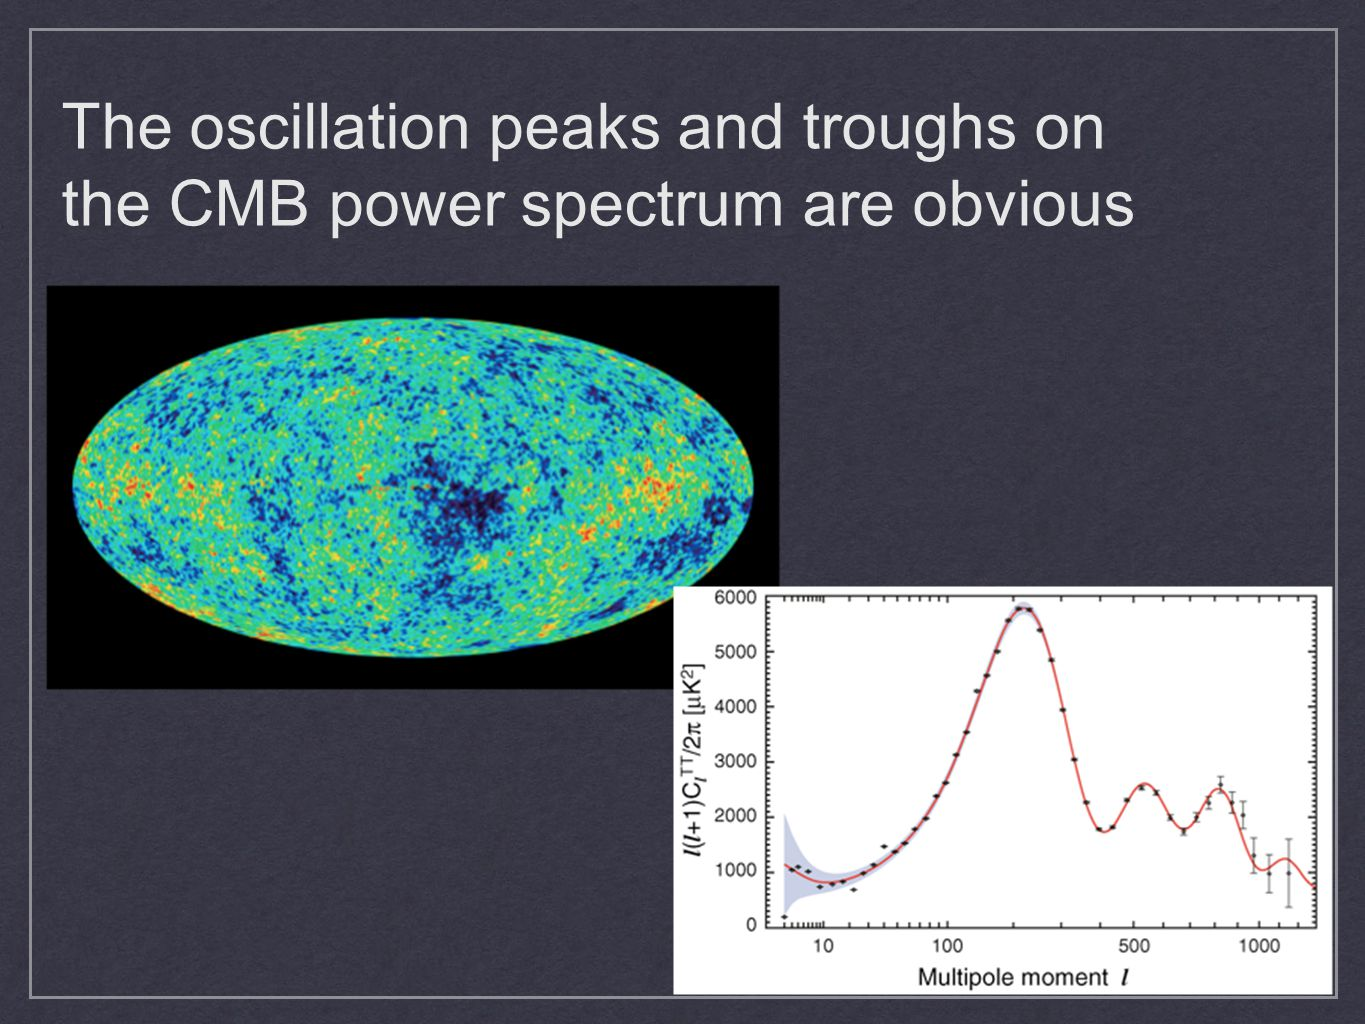 The oscillation peaks and troughs on the CMB power spectrum are obvious